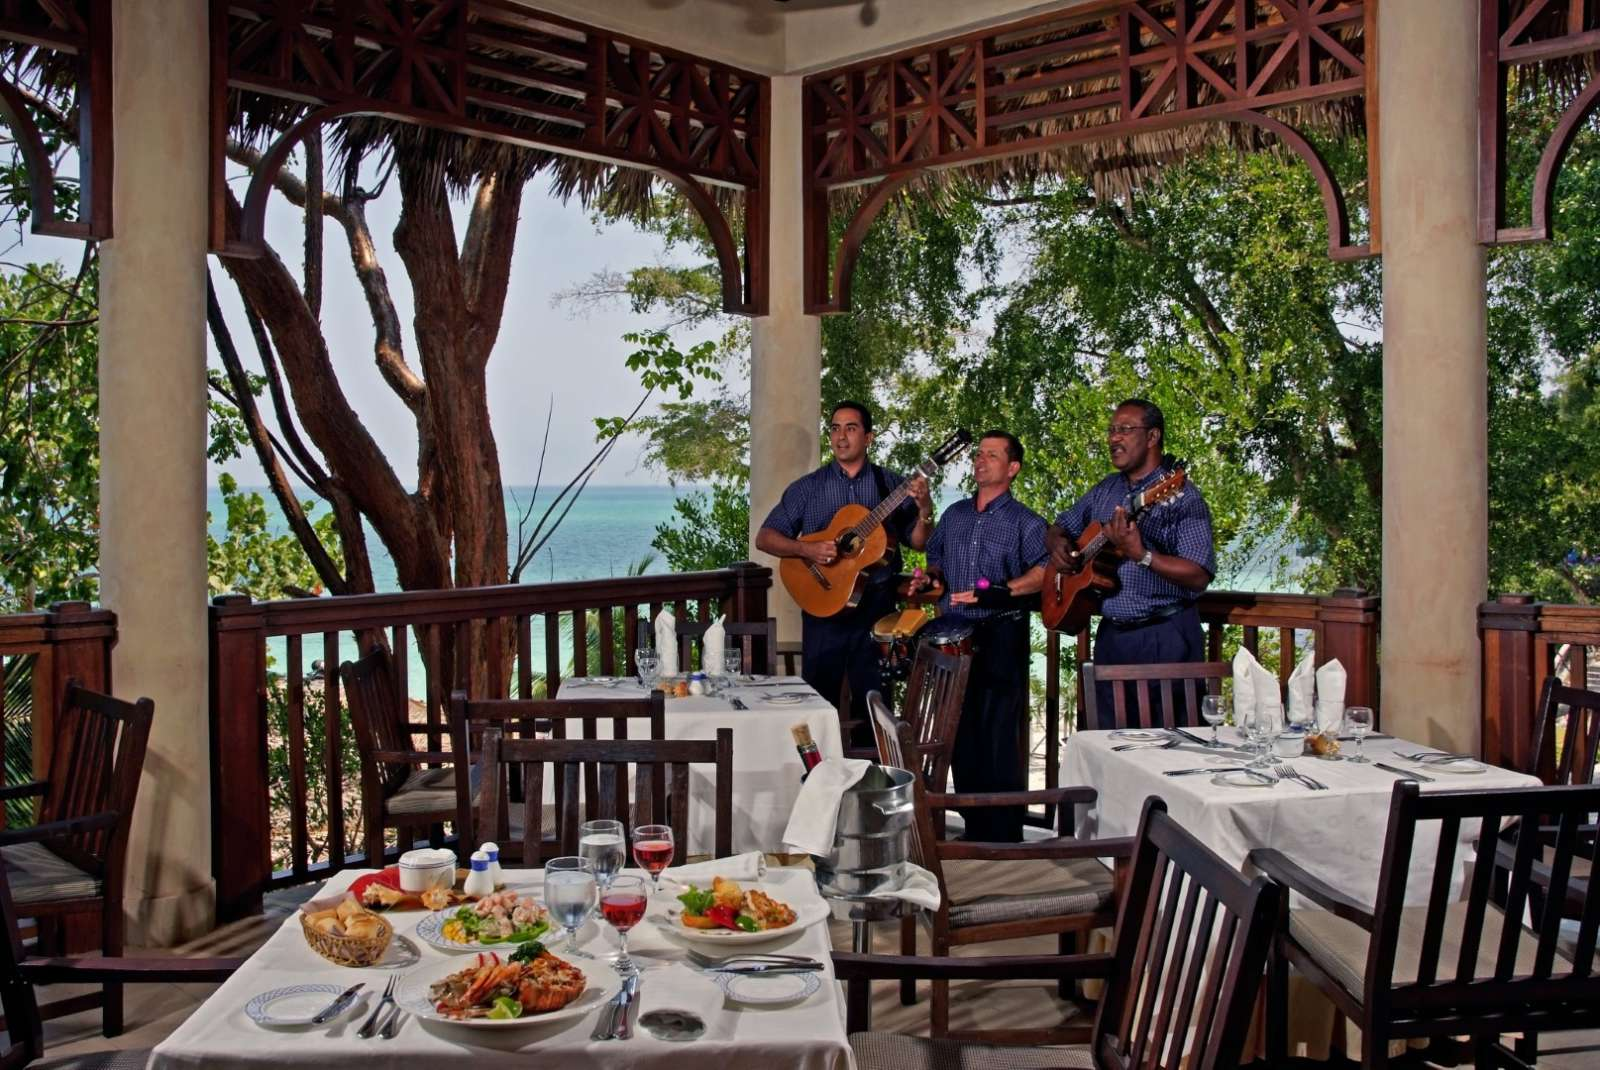 Beach view restaurant with live music